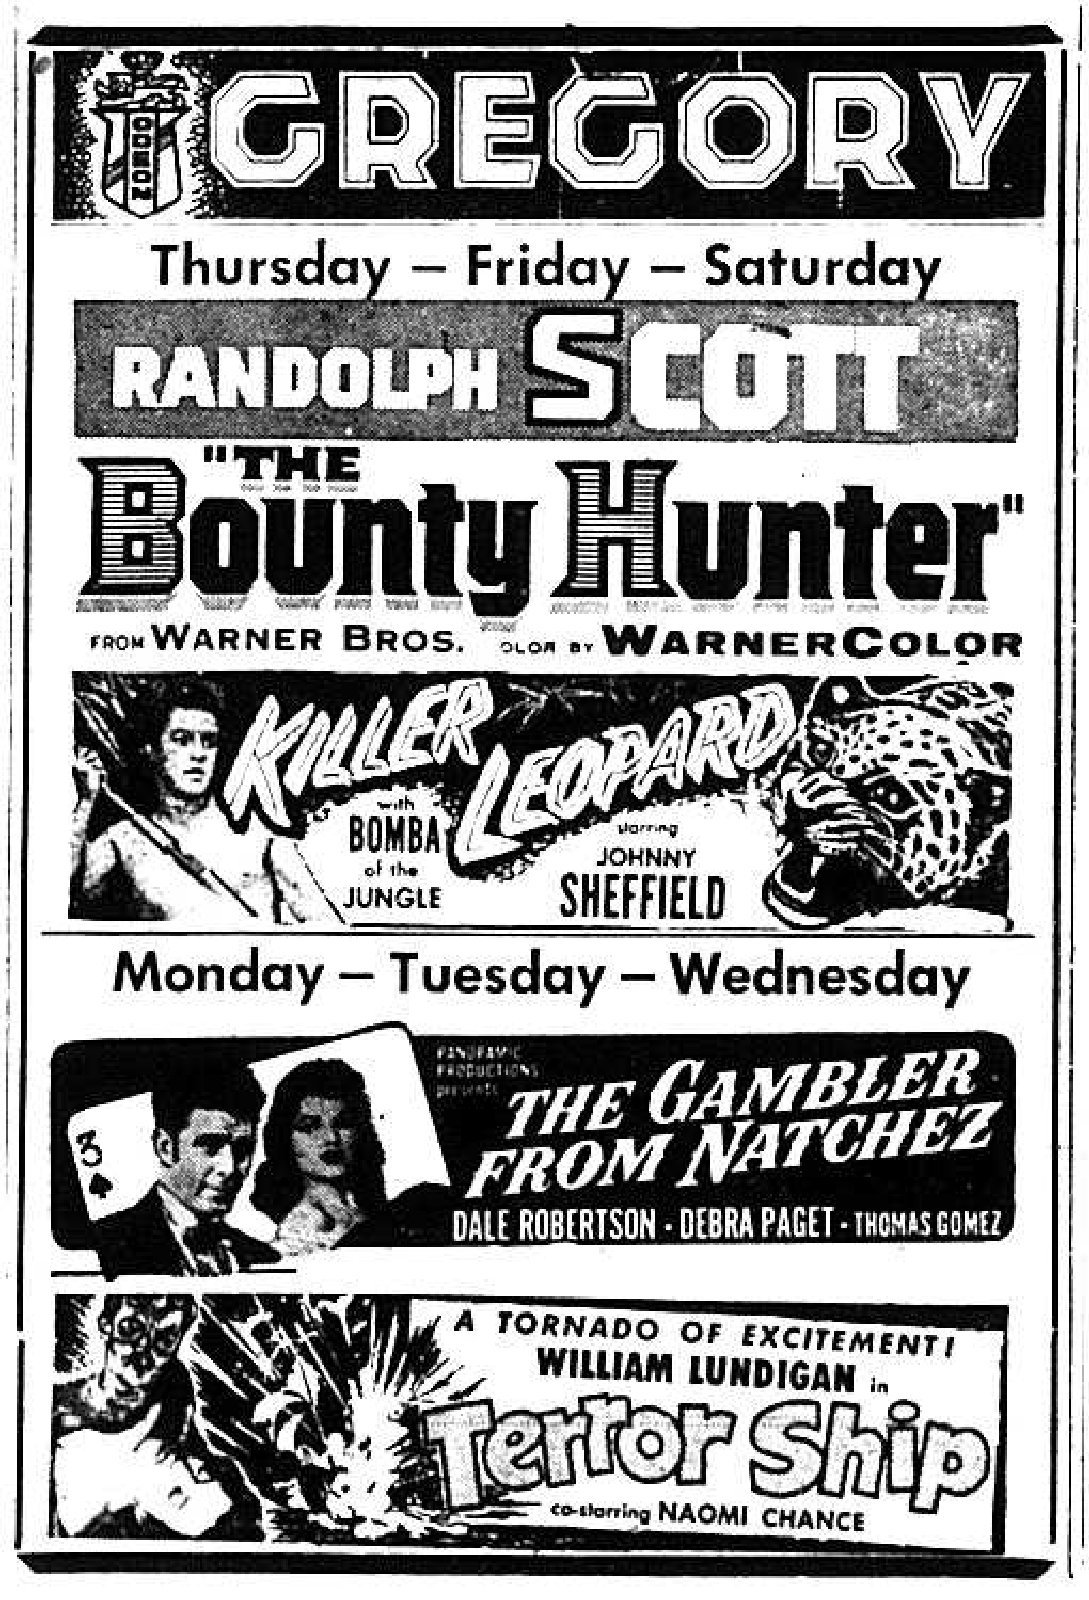 Gregory Theatre Movie Listings, 1955